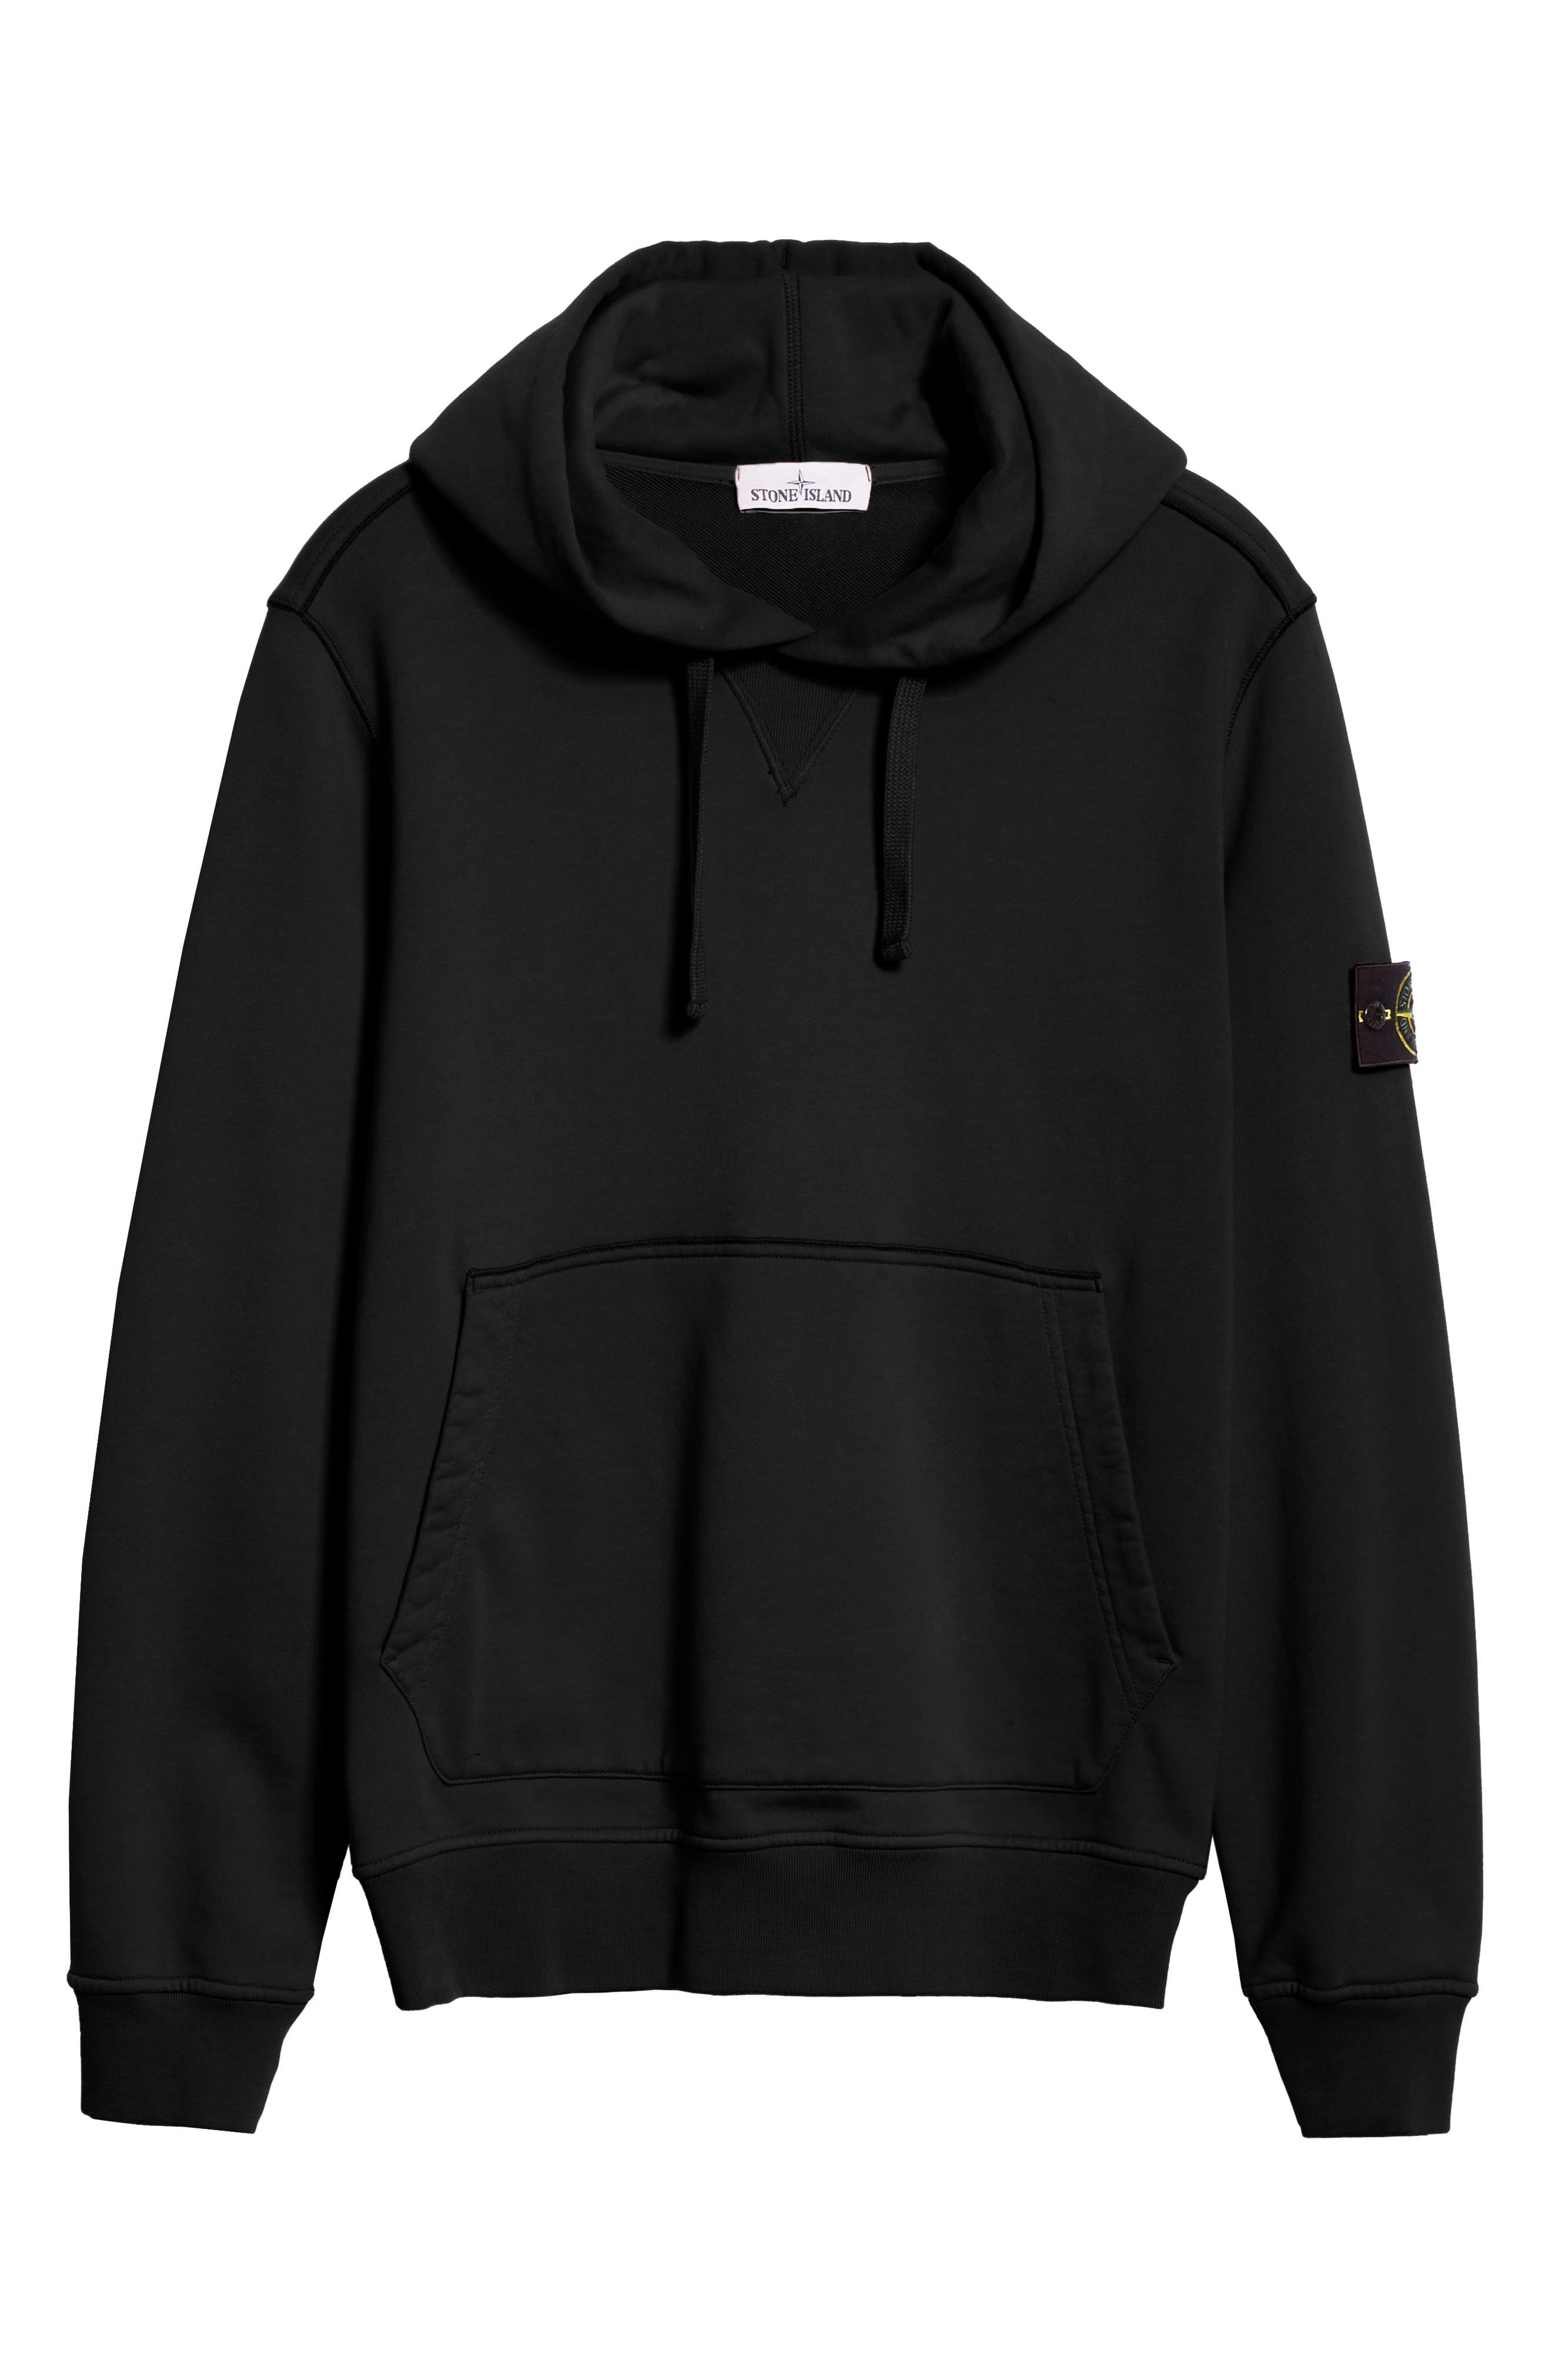 STONE ISLAND, Pullover Hoodie, Alternate thumbnail 6, color, BLACK